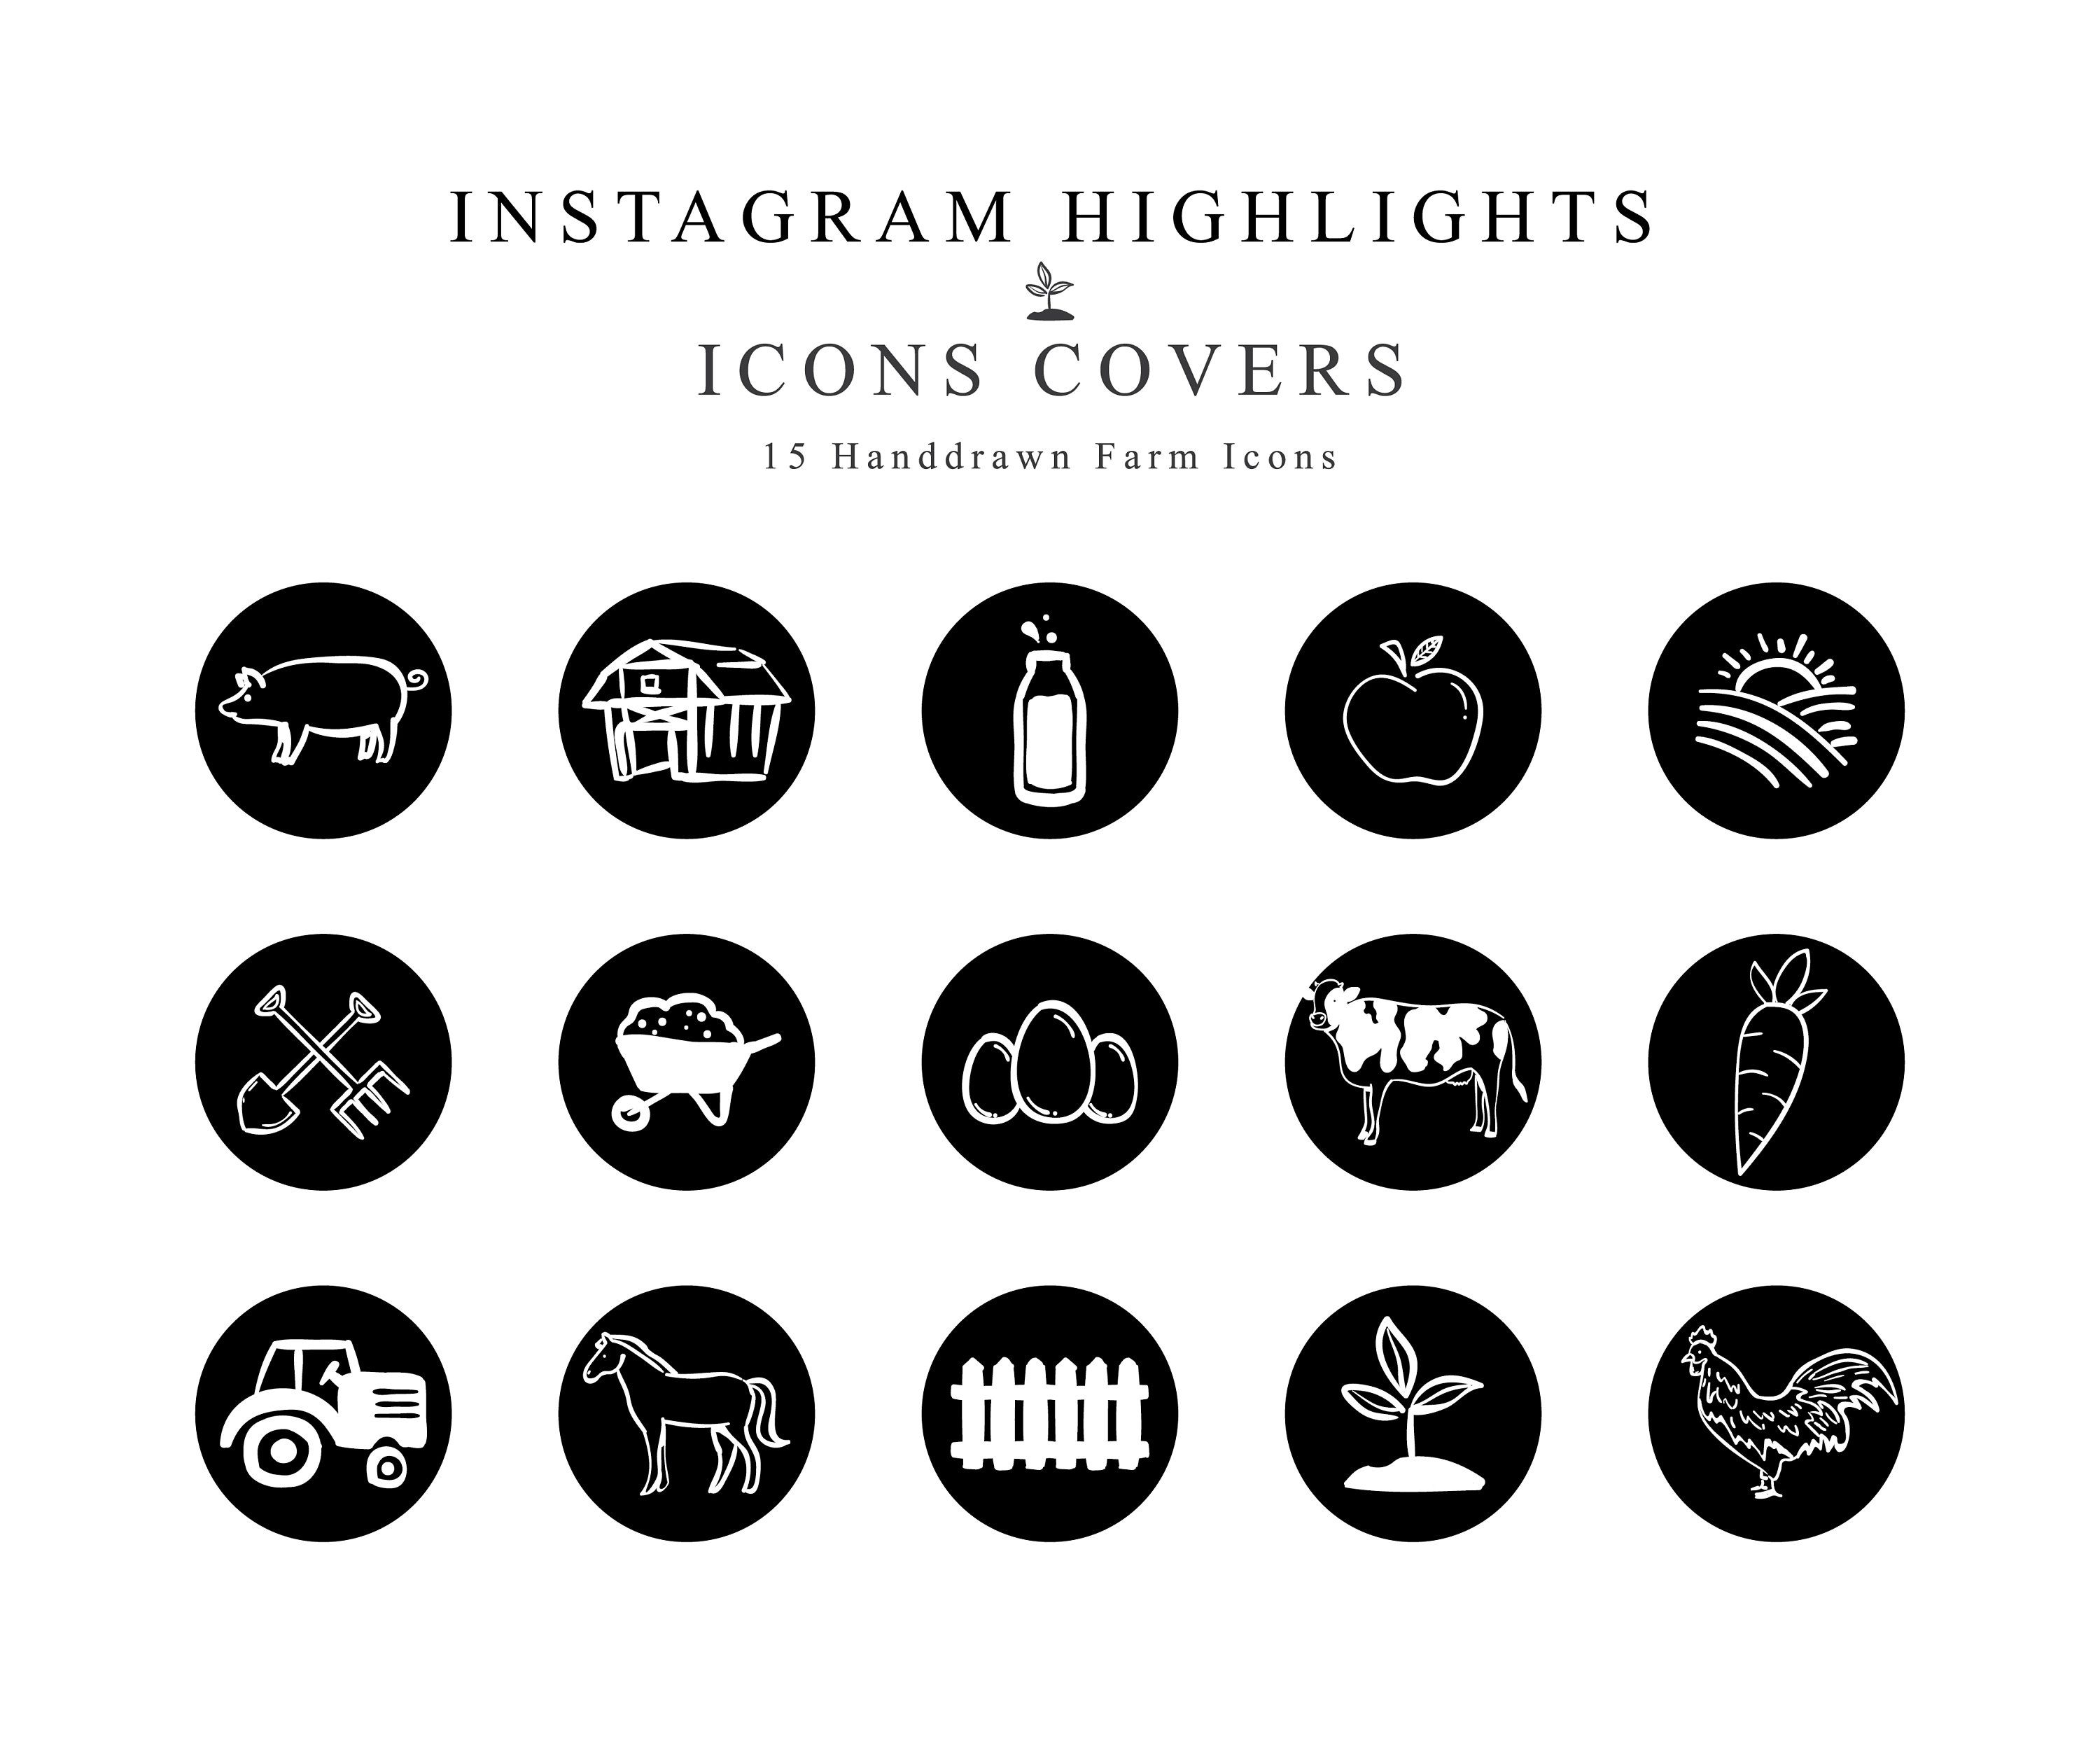 Instagram Story Highlights Cover Icons Farm Handdrawn